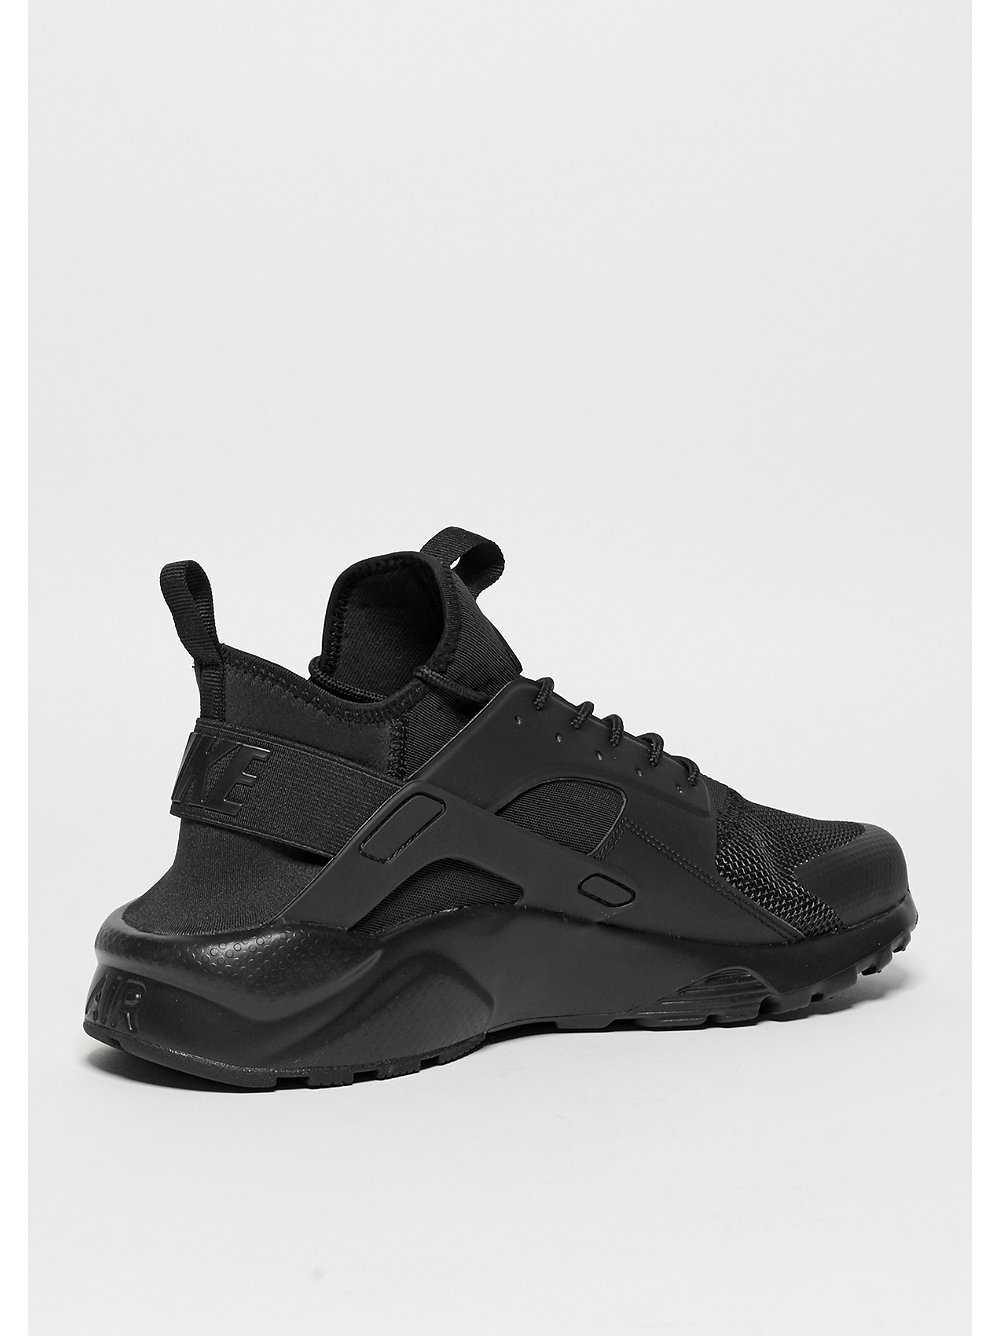 Nike Air Huarache Damen Snipes klang